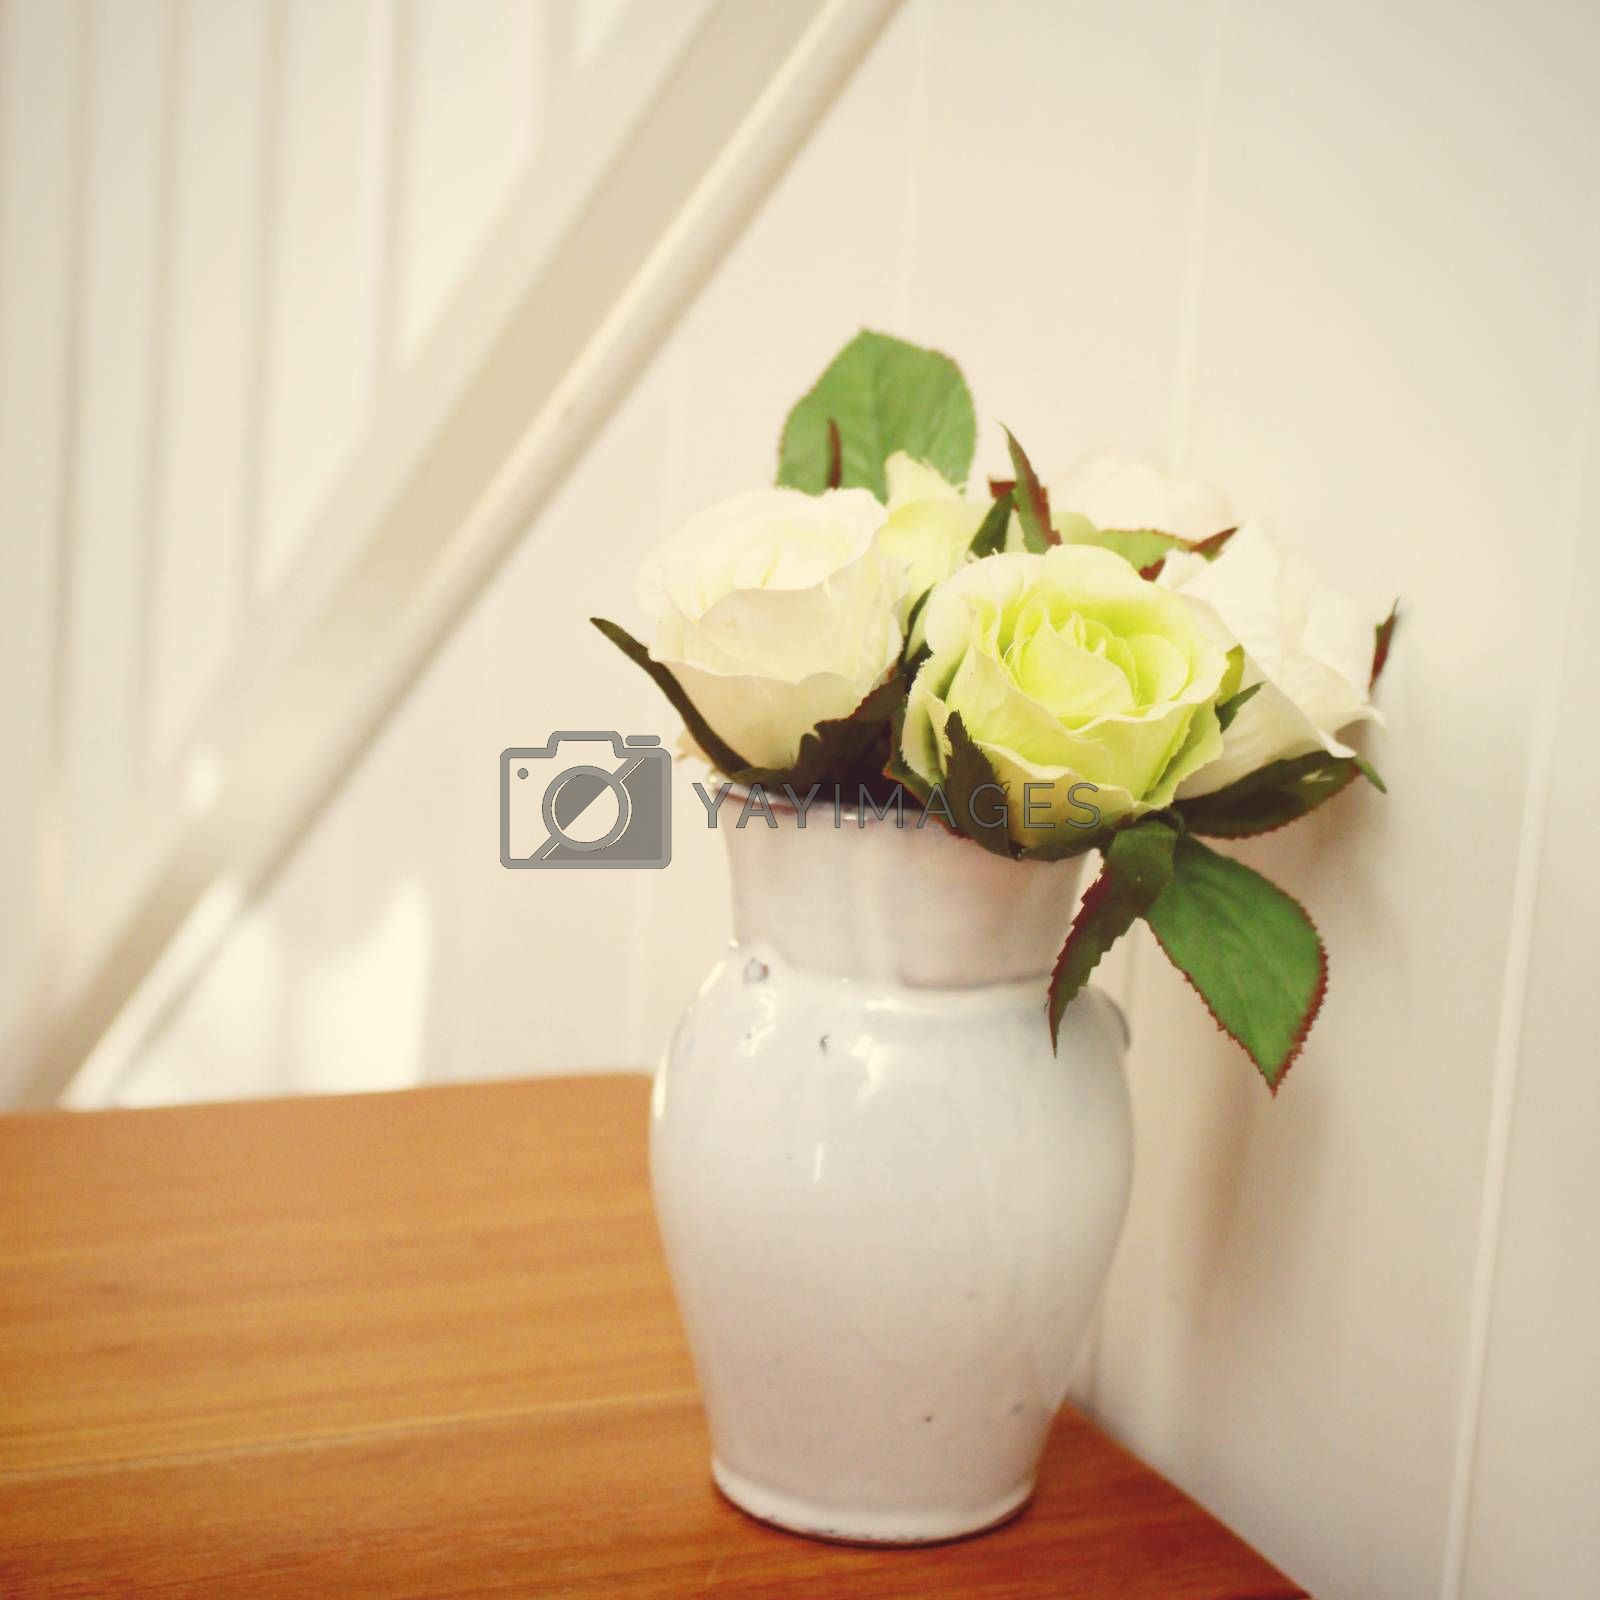 Rose in flowerpot for decoration with retro filter effect